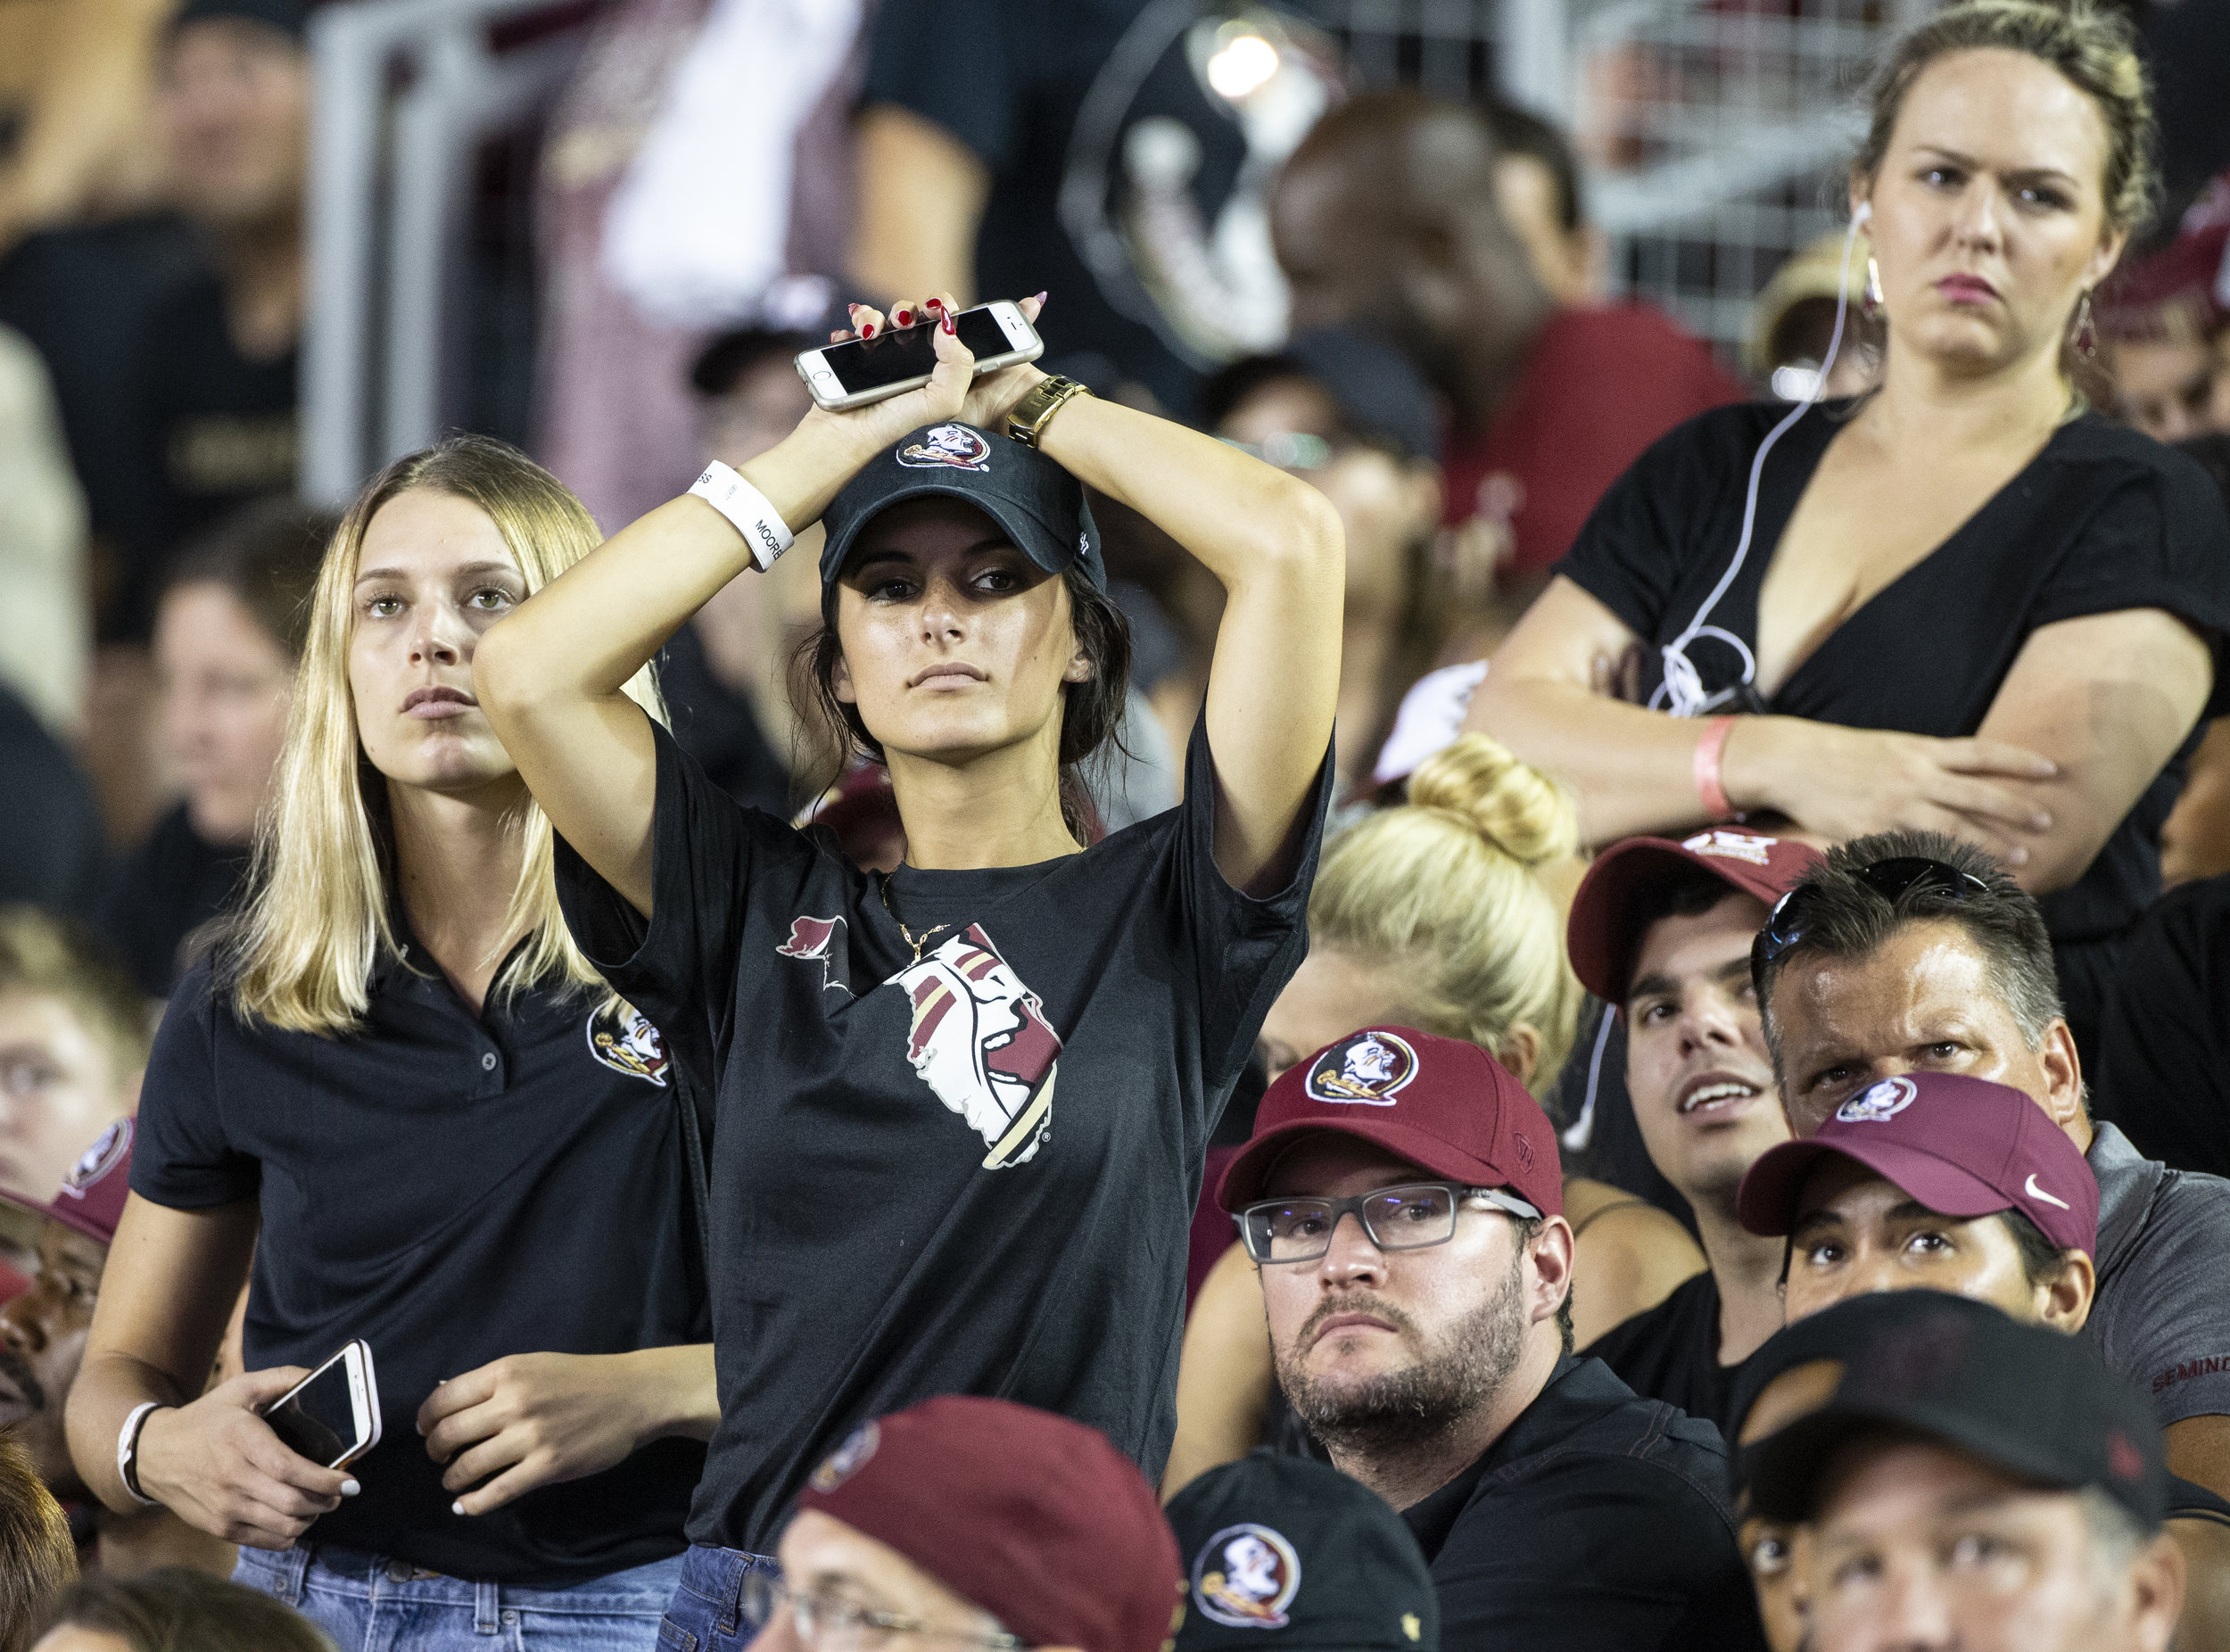 Stunned Florida State fans watch as Virginia Tech defeated them 24-3 in an NCAA college football game in Tallahassee, Fla., Monday, Sept. 3, 2018. (AP Photo/Mark Wallheiser)